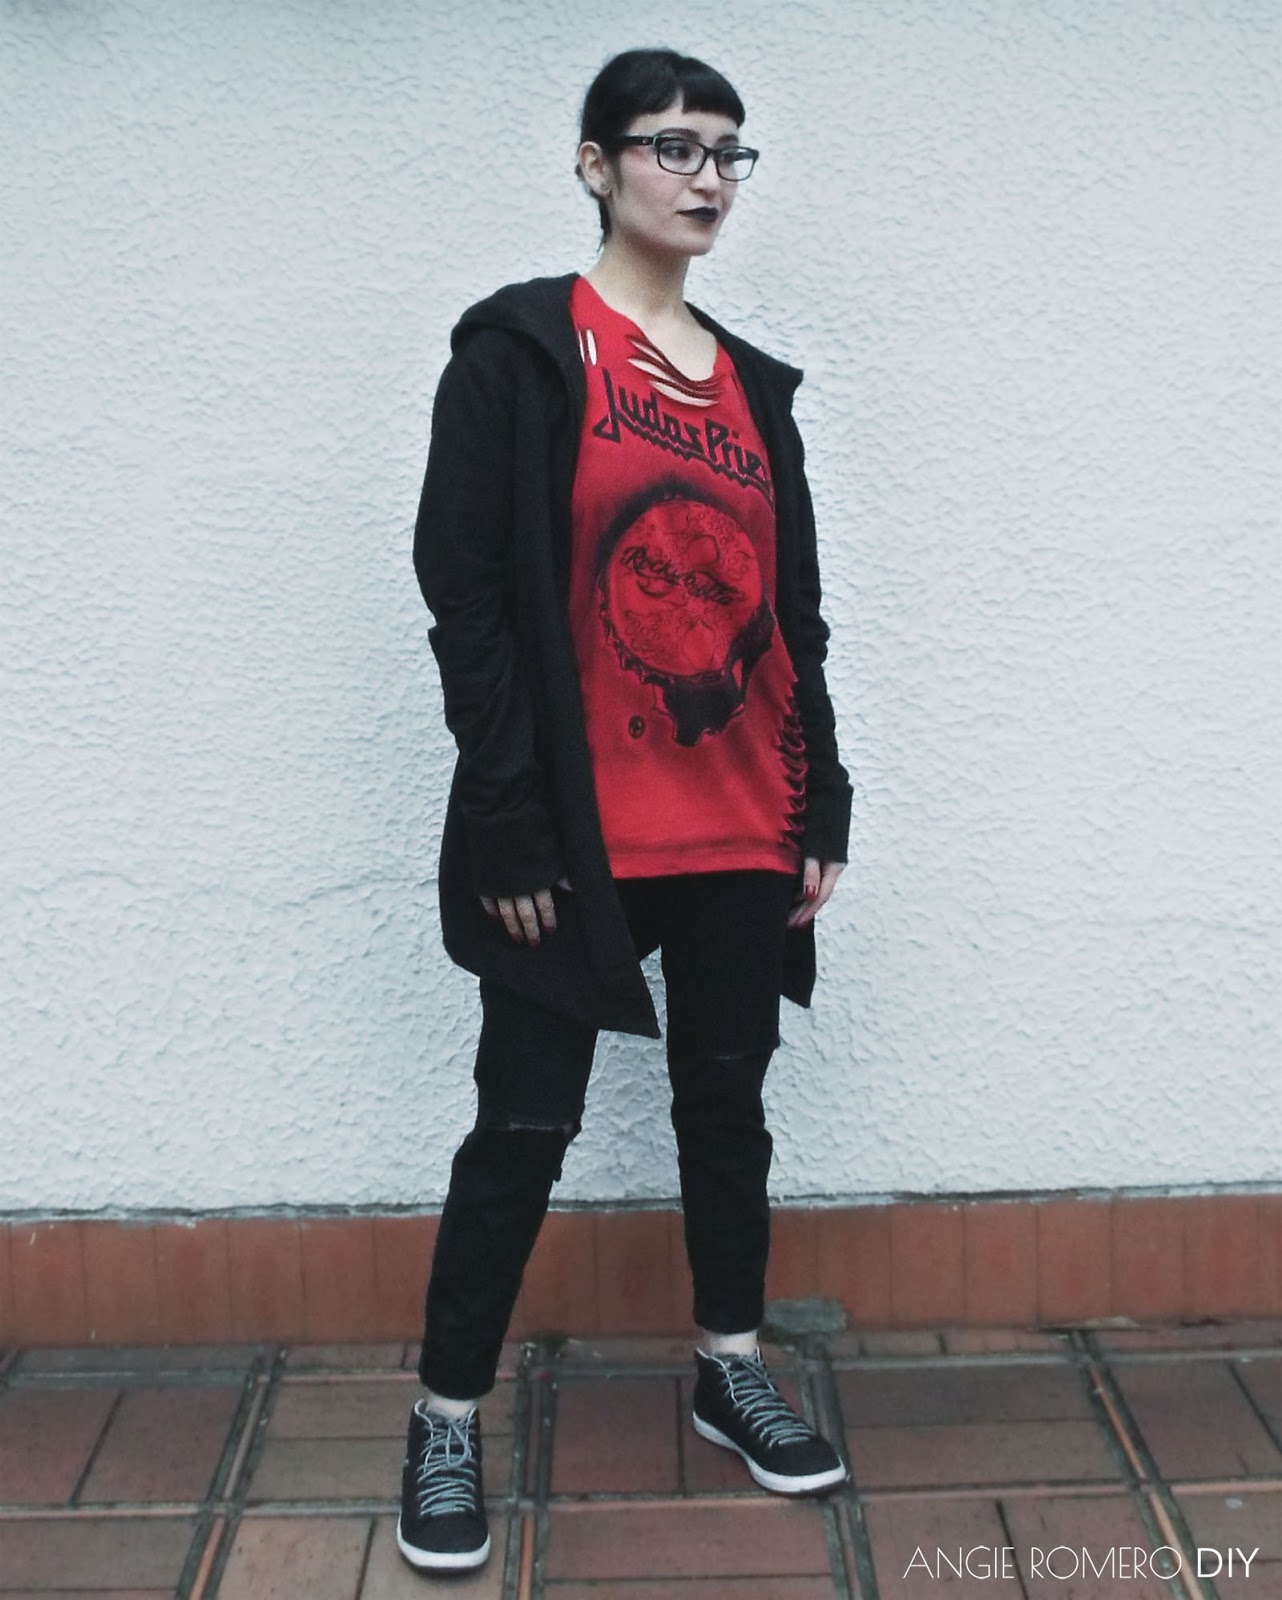 Dark Street Style: Look alternativo y talla grande con camiseta de metal destruida